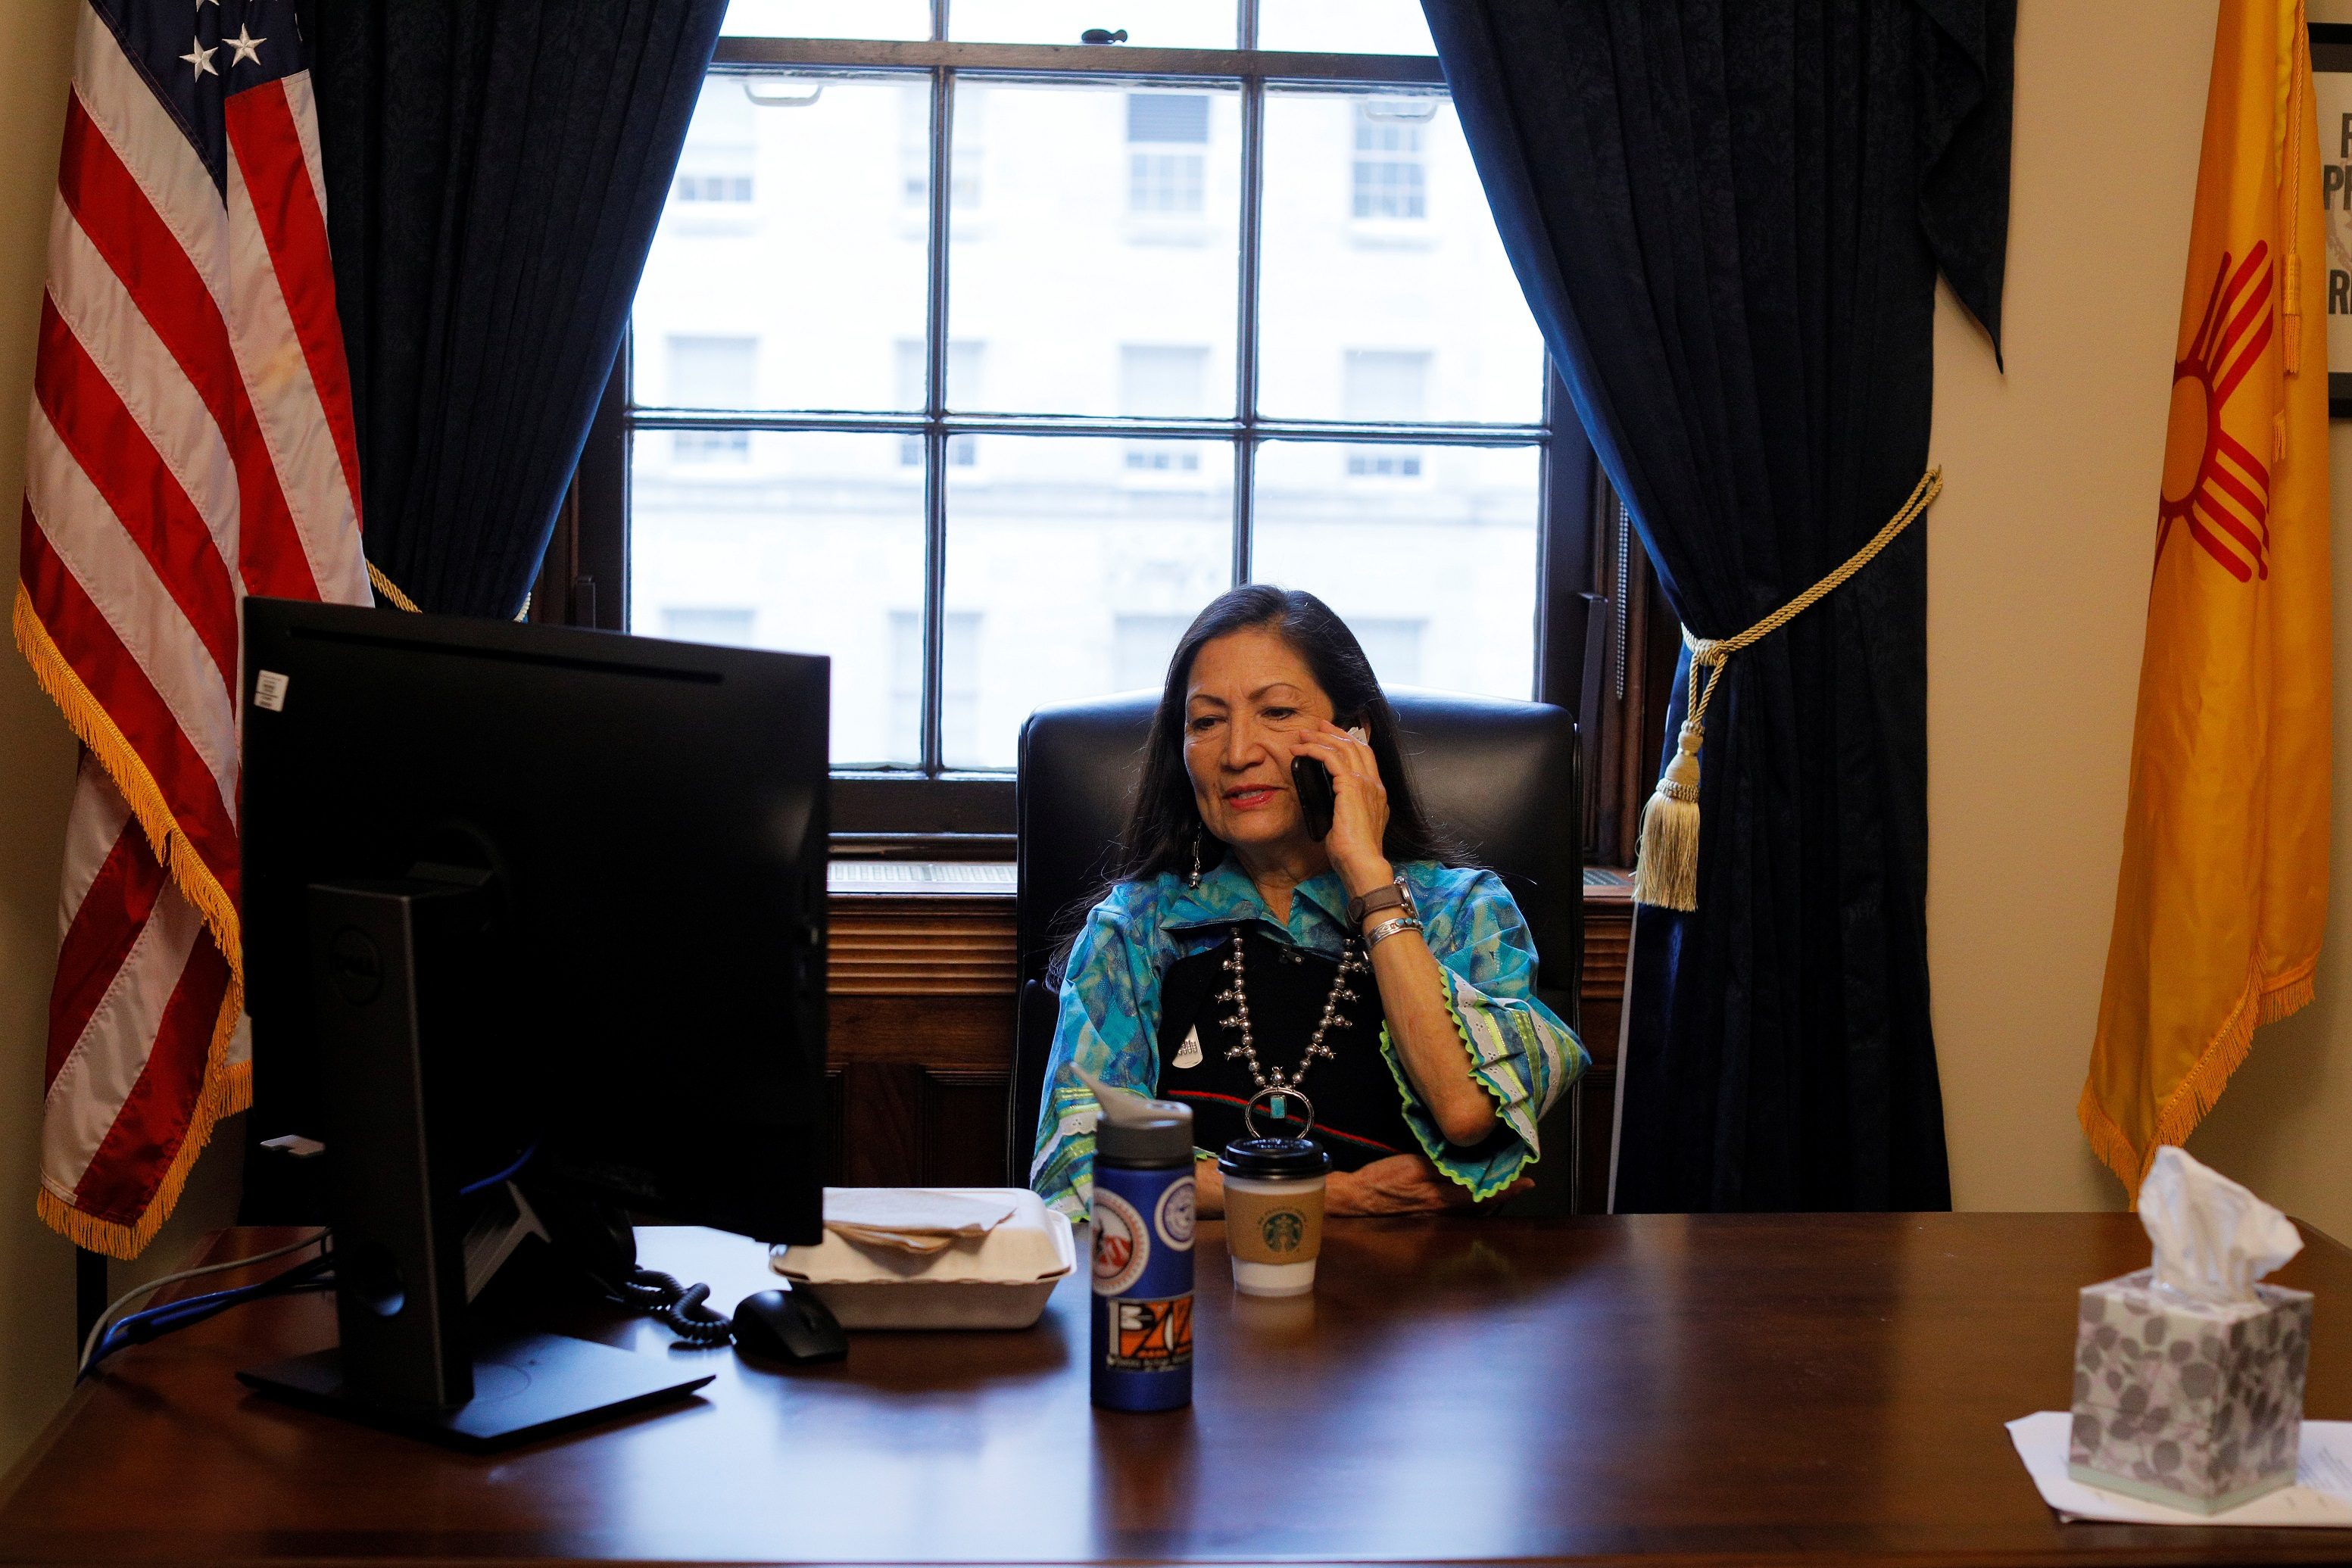 Deb Haaland works in her office at the U.S. Capitol before being sworn in as one of the two first Native American women in the U.S. House of Representatives in Washington, U.S., January 3, 2019. REUTERS/Brian Snyder